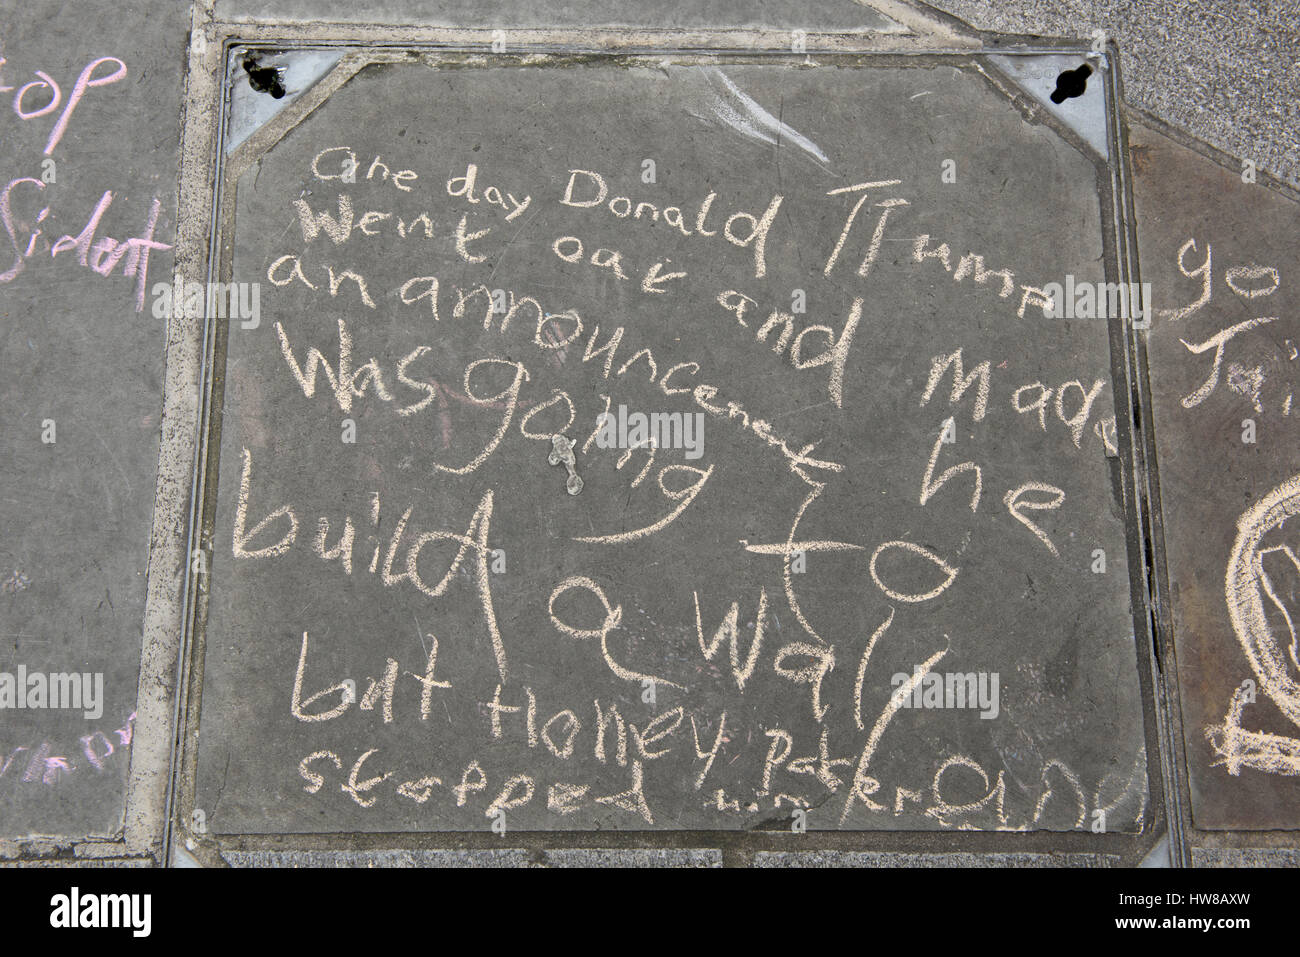 Anti-Trump and anti-racism message about the 'Donald Trump going to build a wall' is written on the pavement - Stock Image